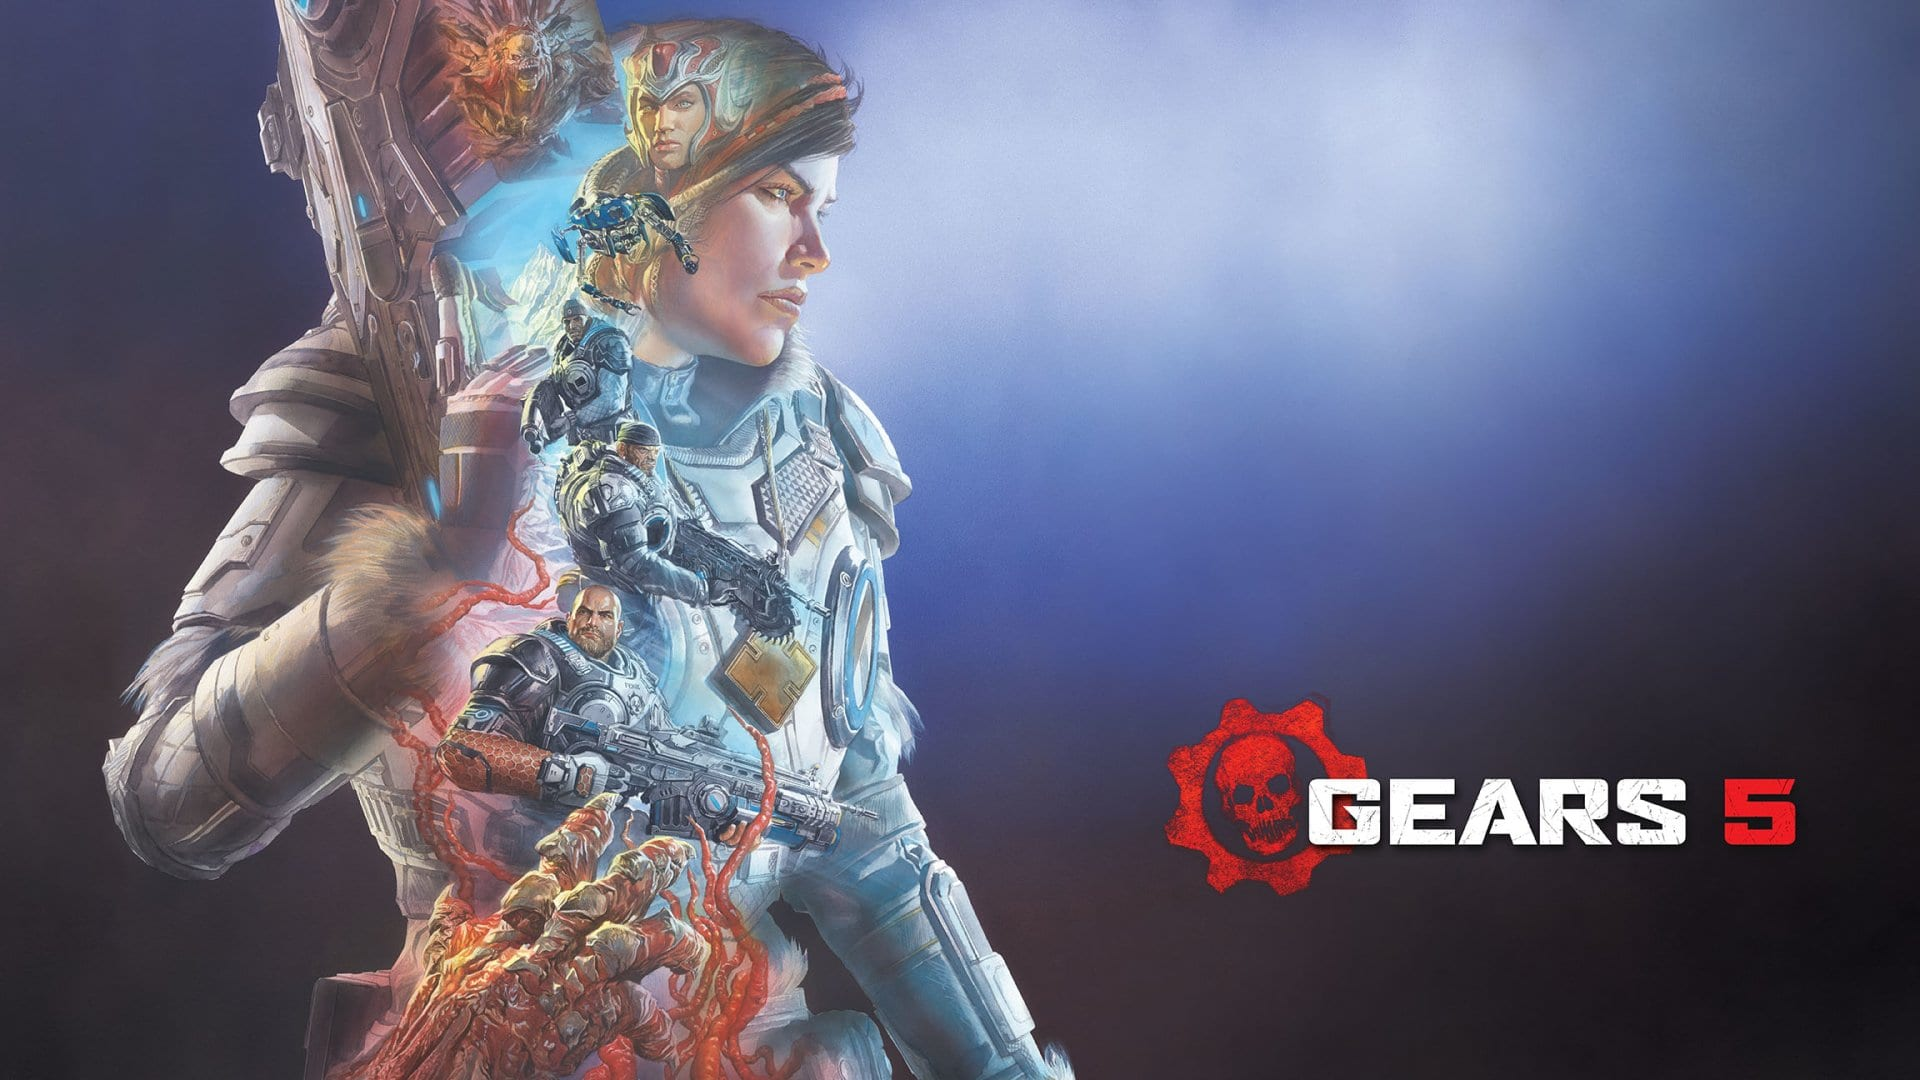 10 4k Hd Gears 5 Wallpapers You Need To Make Your Next Desktop Background